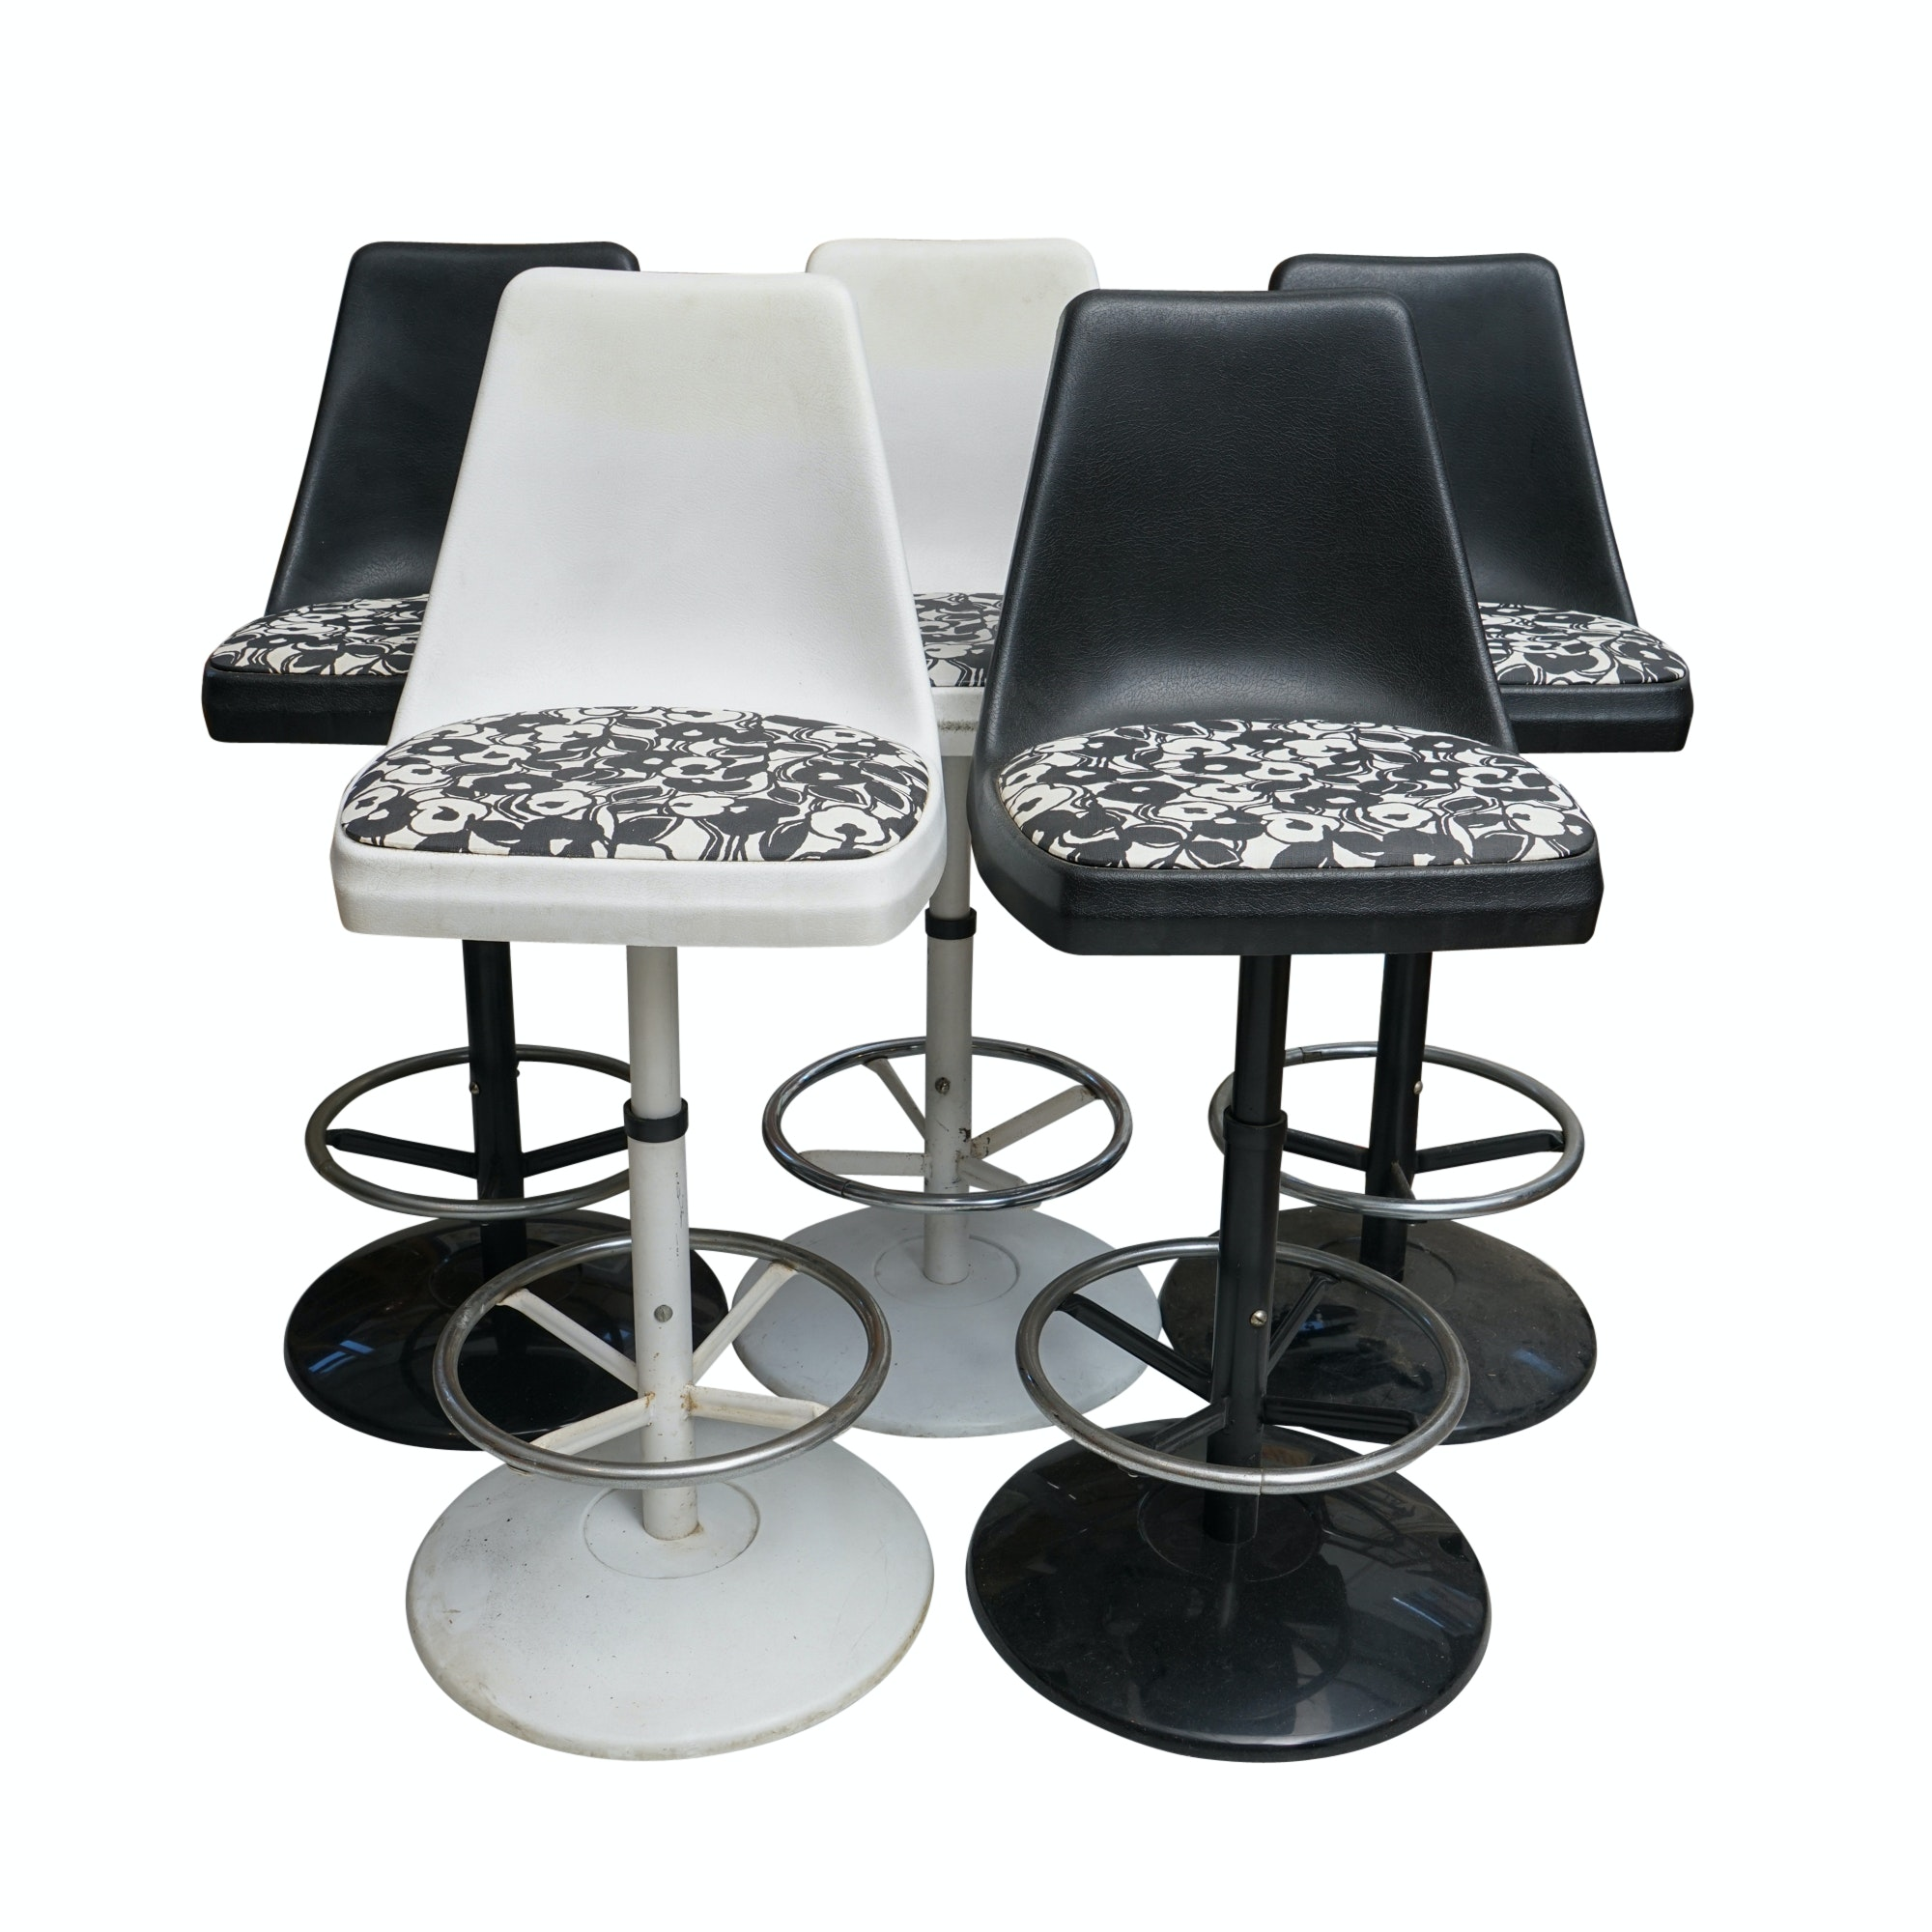 Five Mid Century Modern Style Black and White Bar Stools